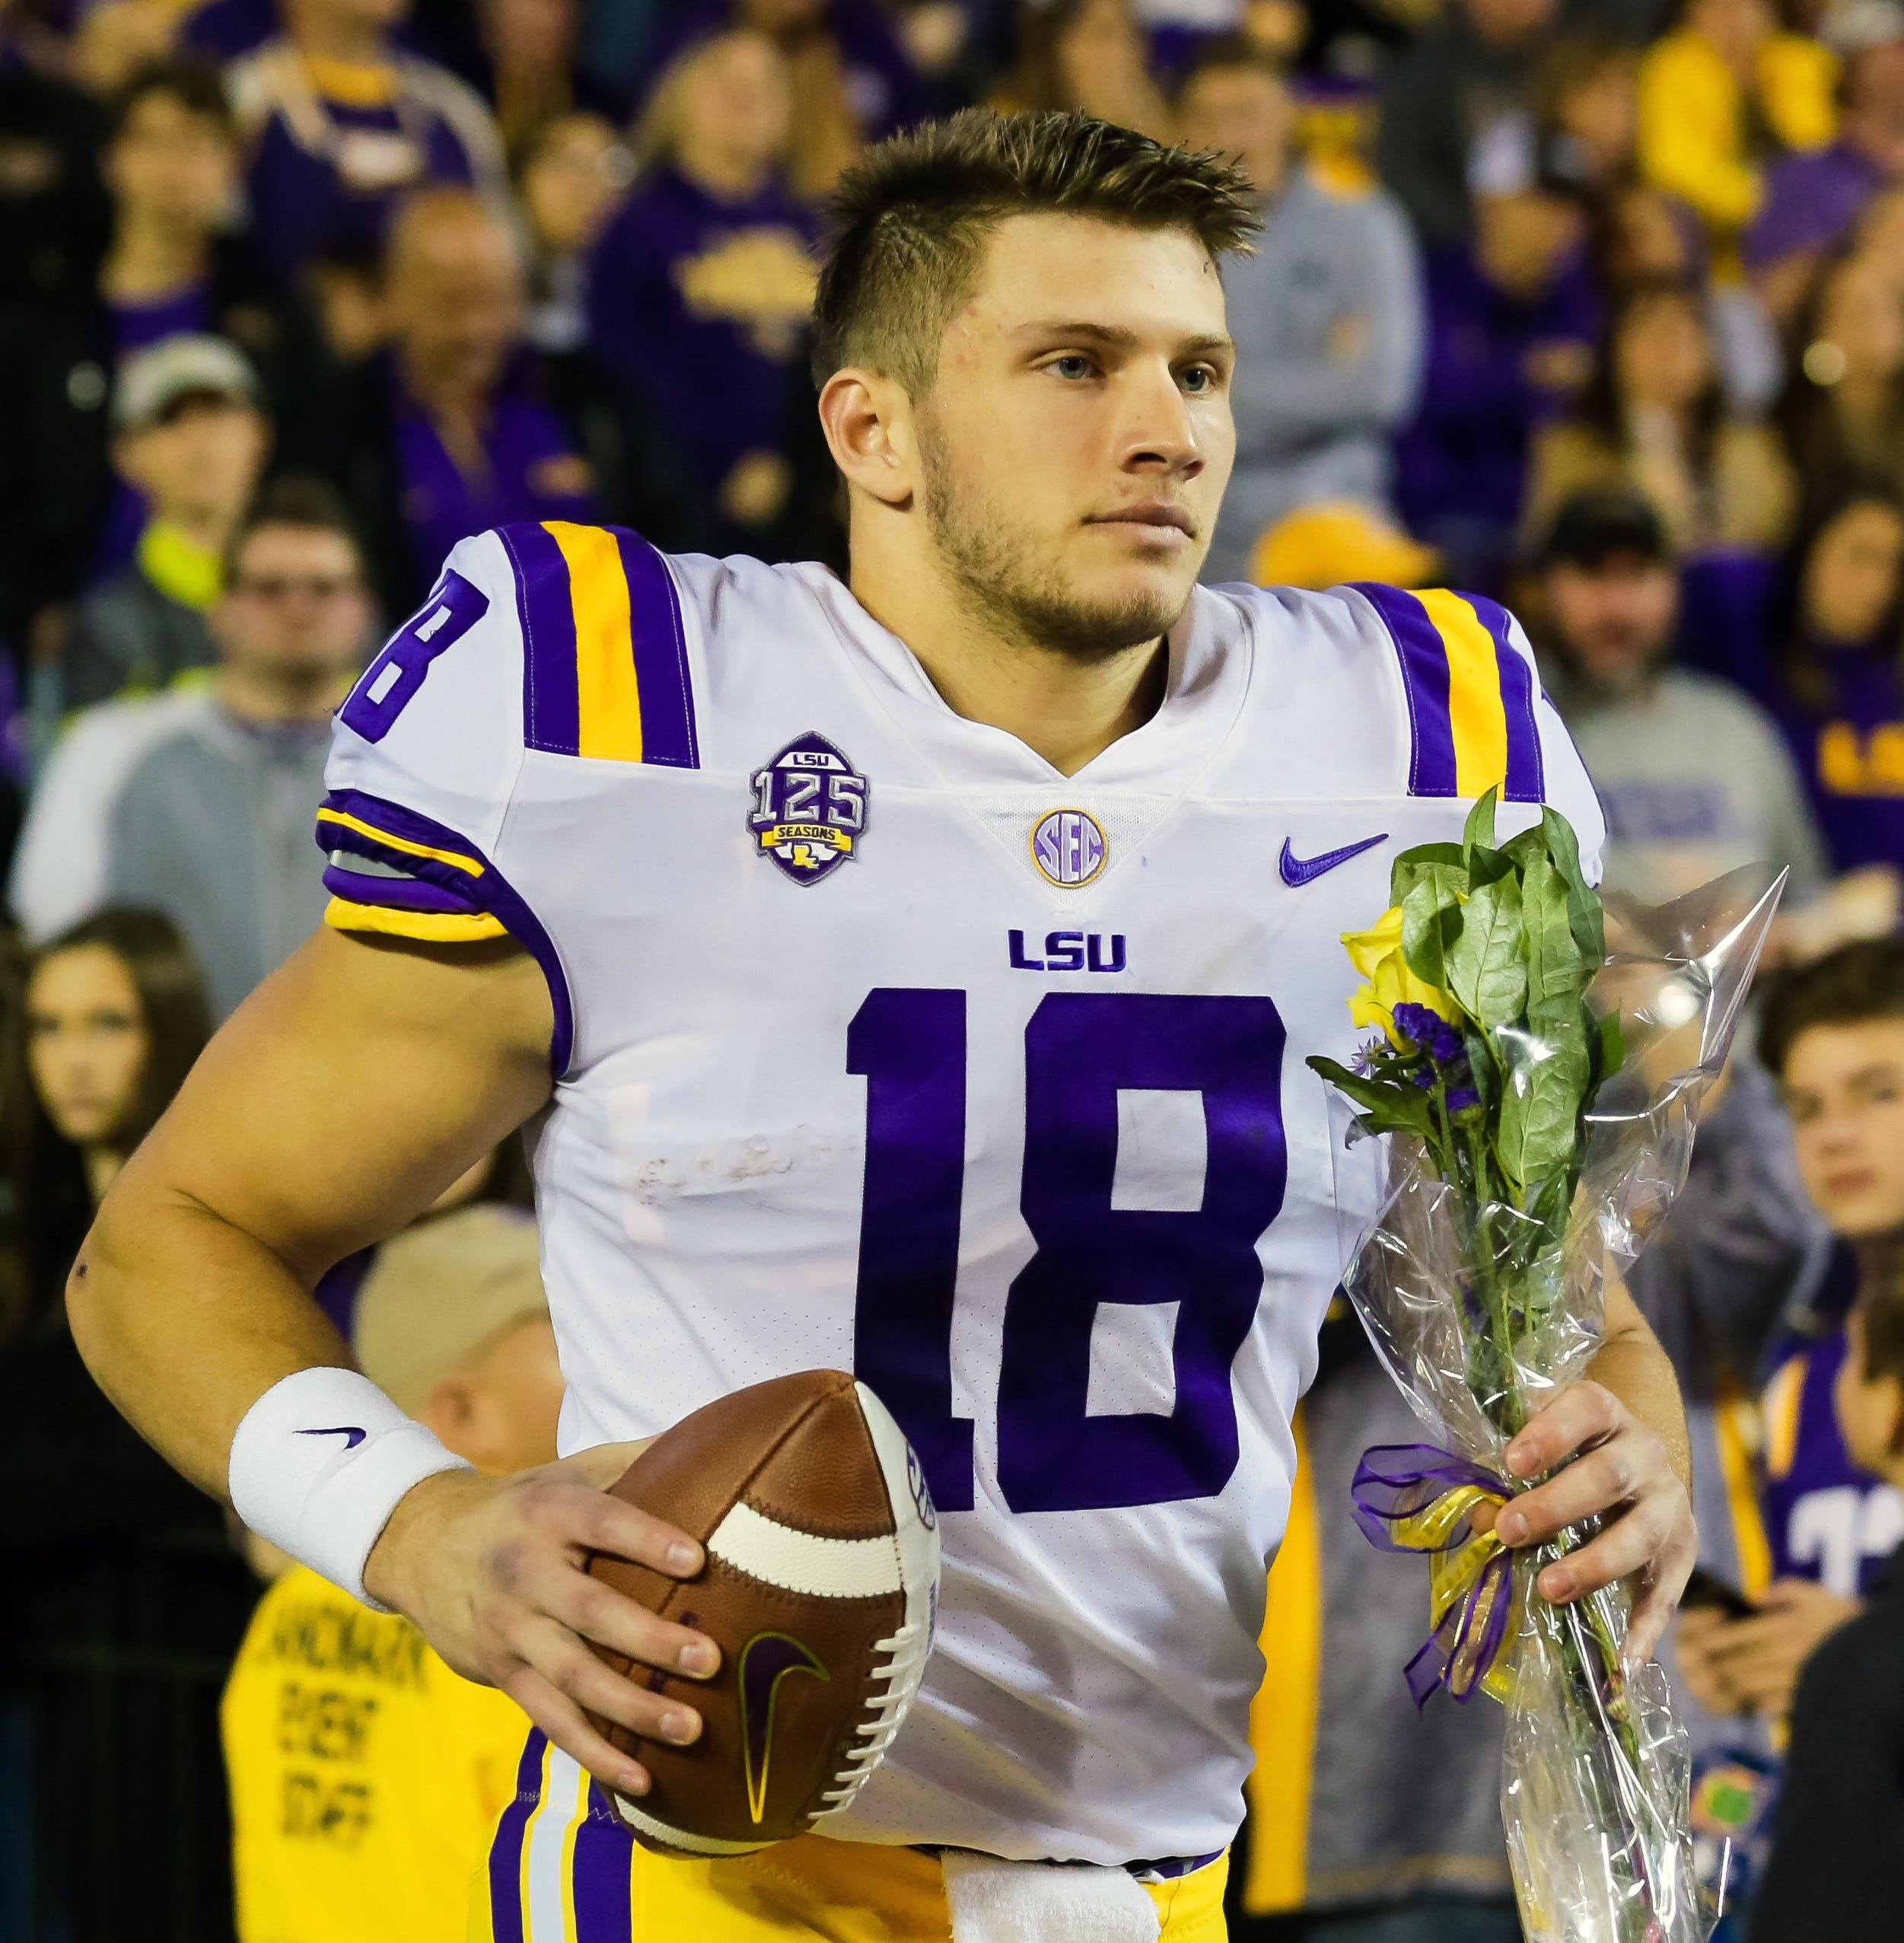 Oakland picks LSU tight end Foster Moreau with the 35th pick of the draft's fourth round